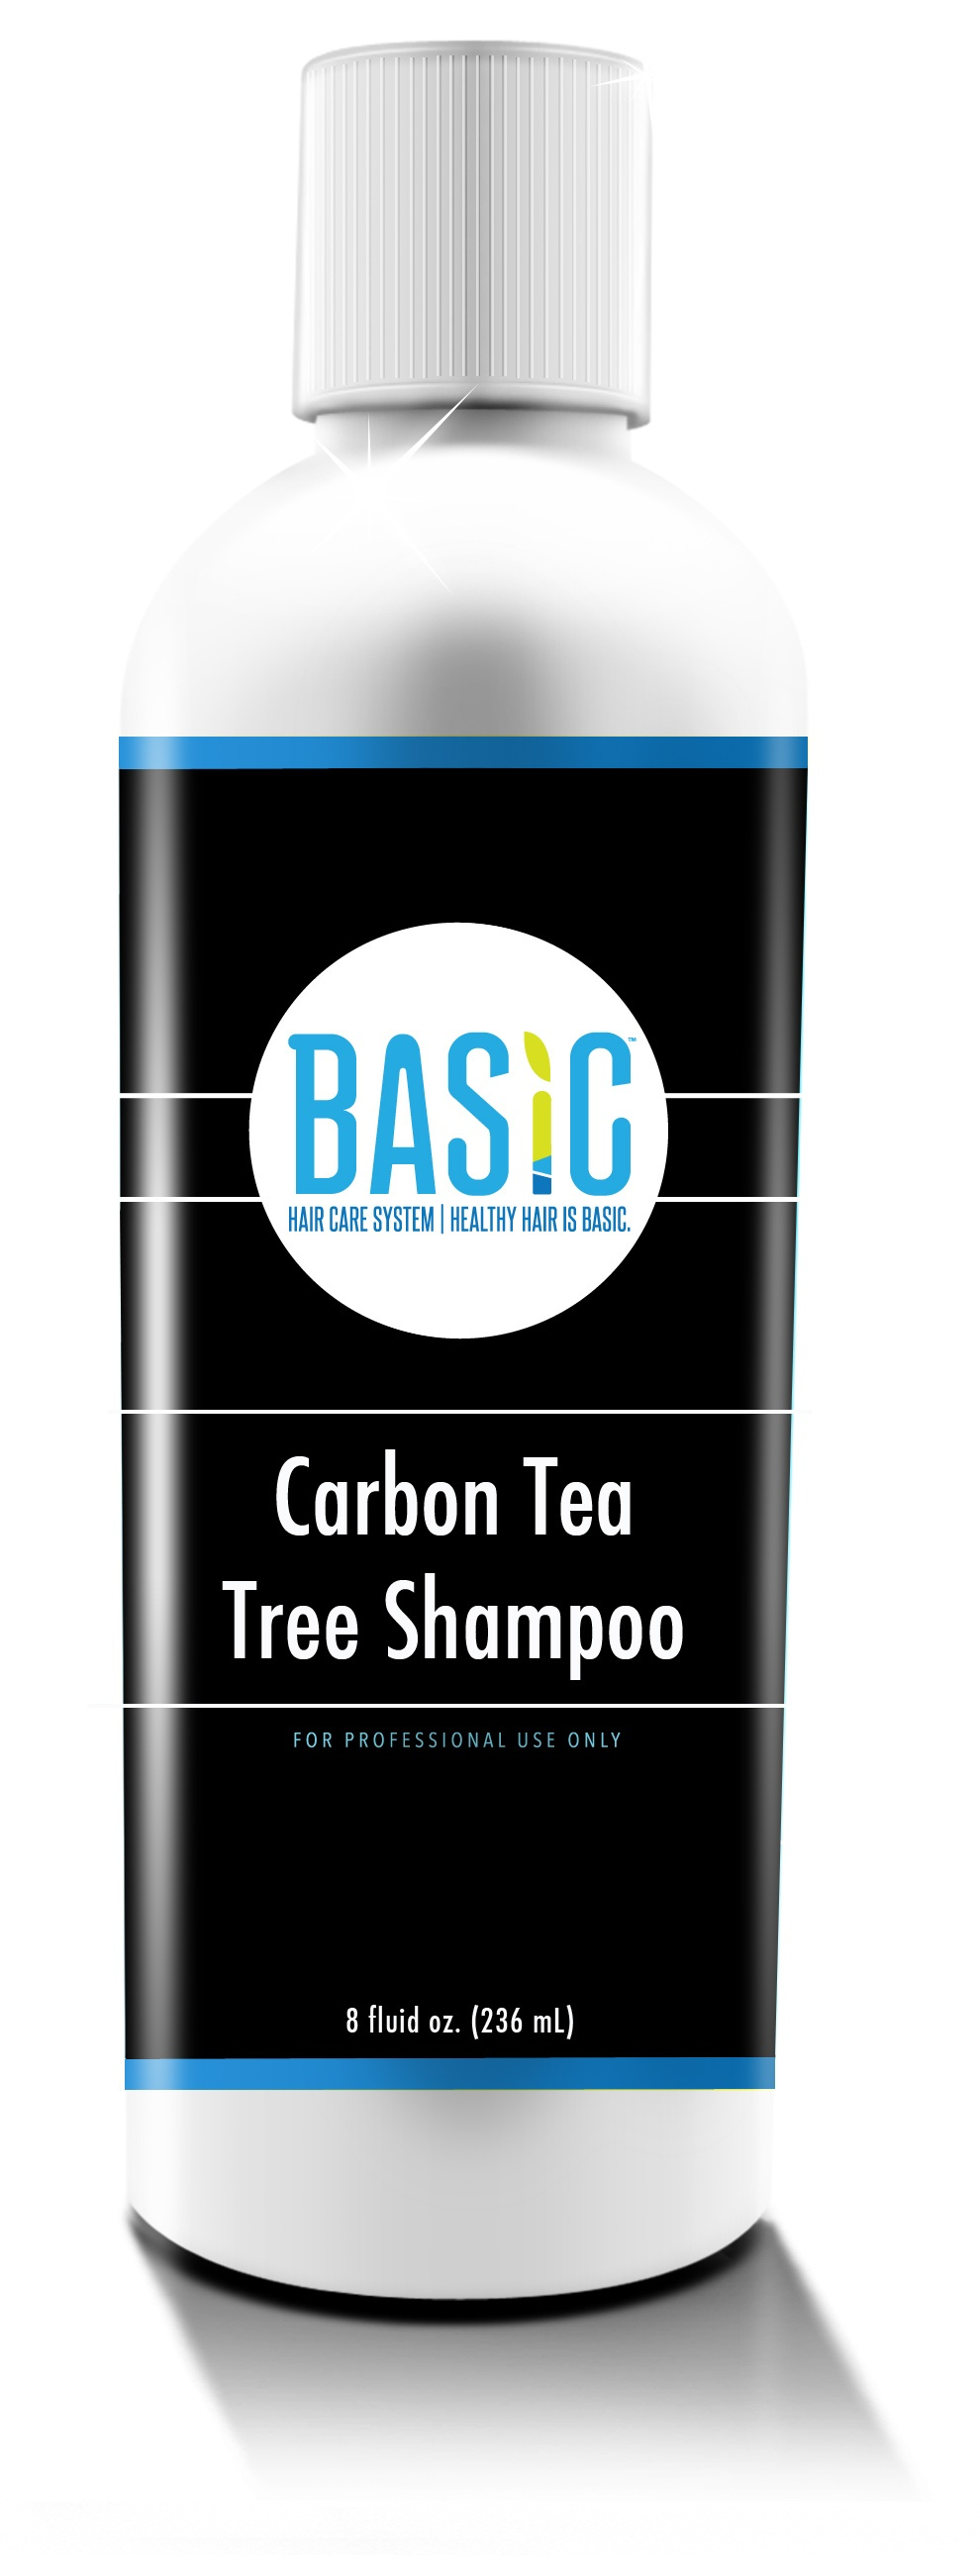 Carbon Tea Tree Shampoo